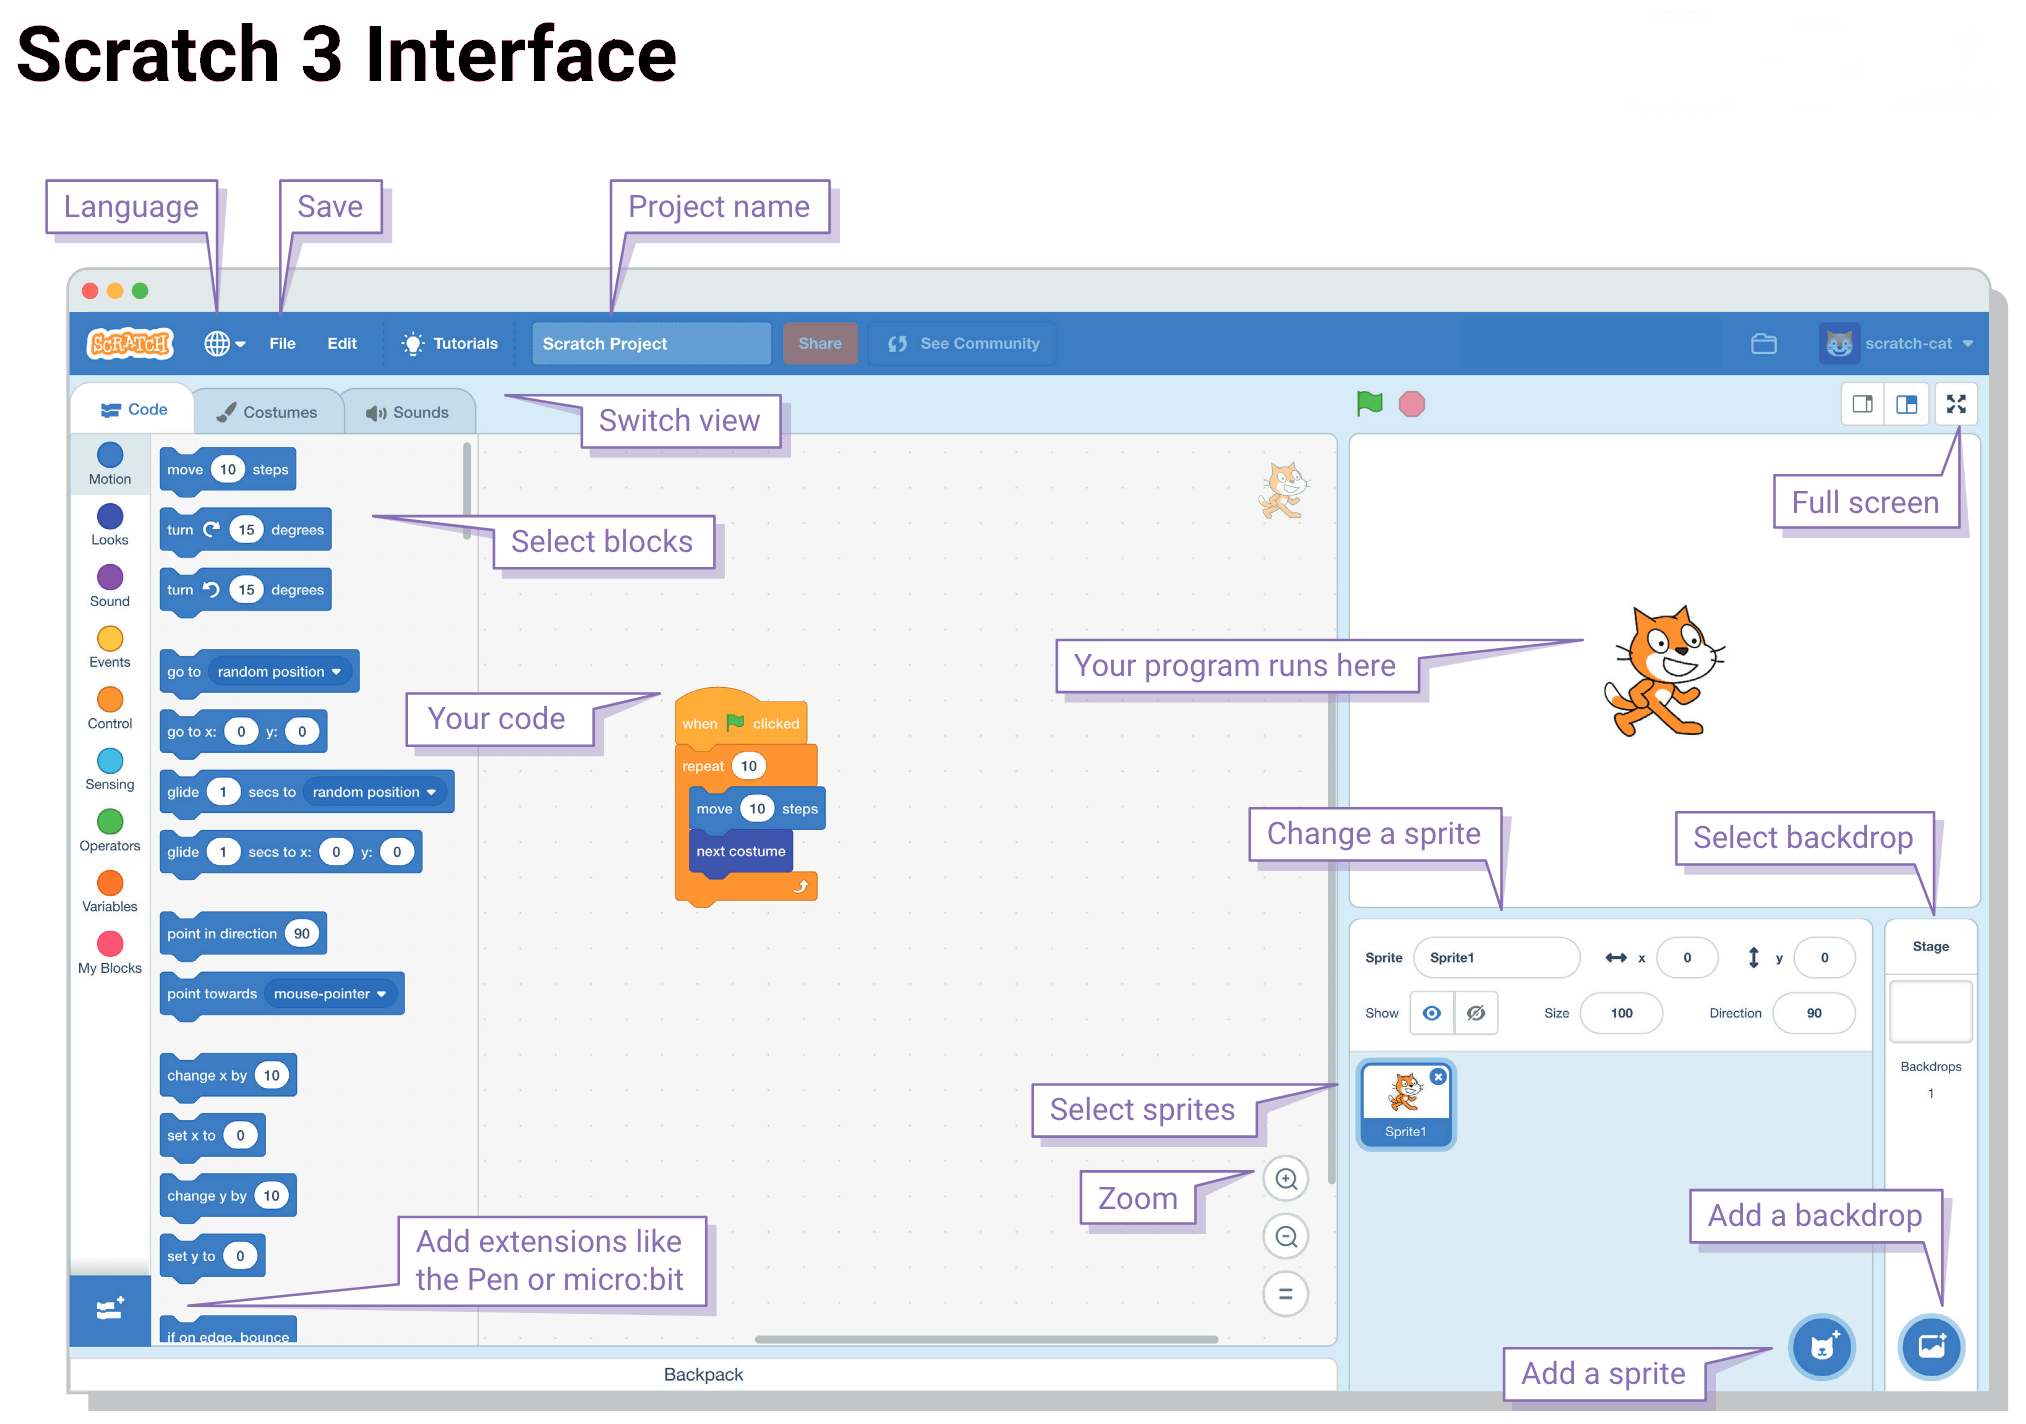 Scratch 3 Interface